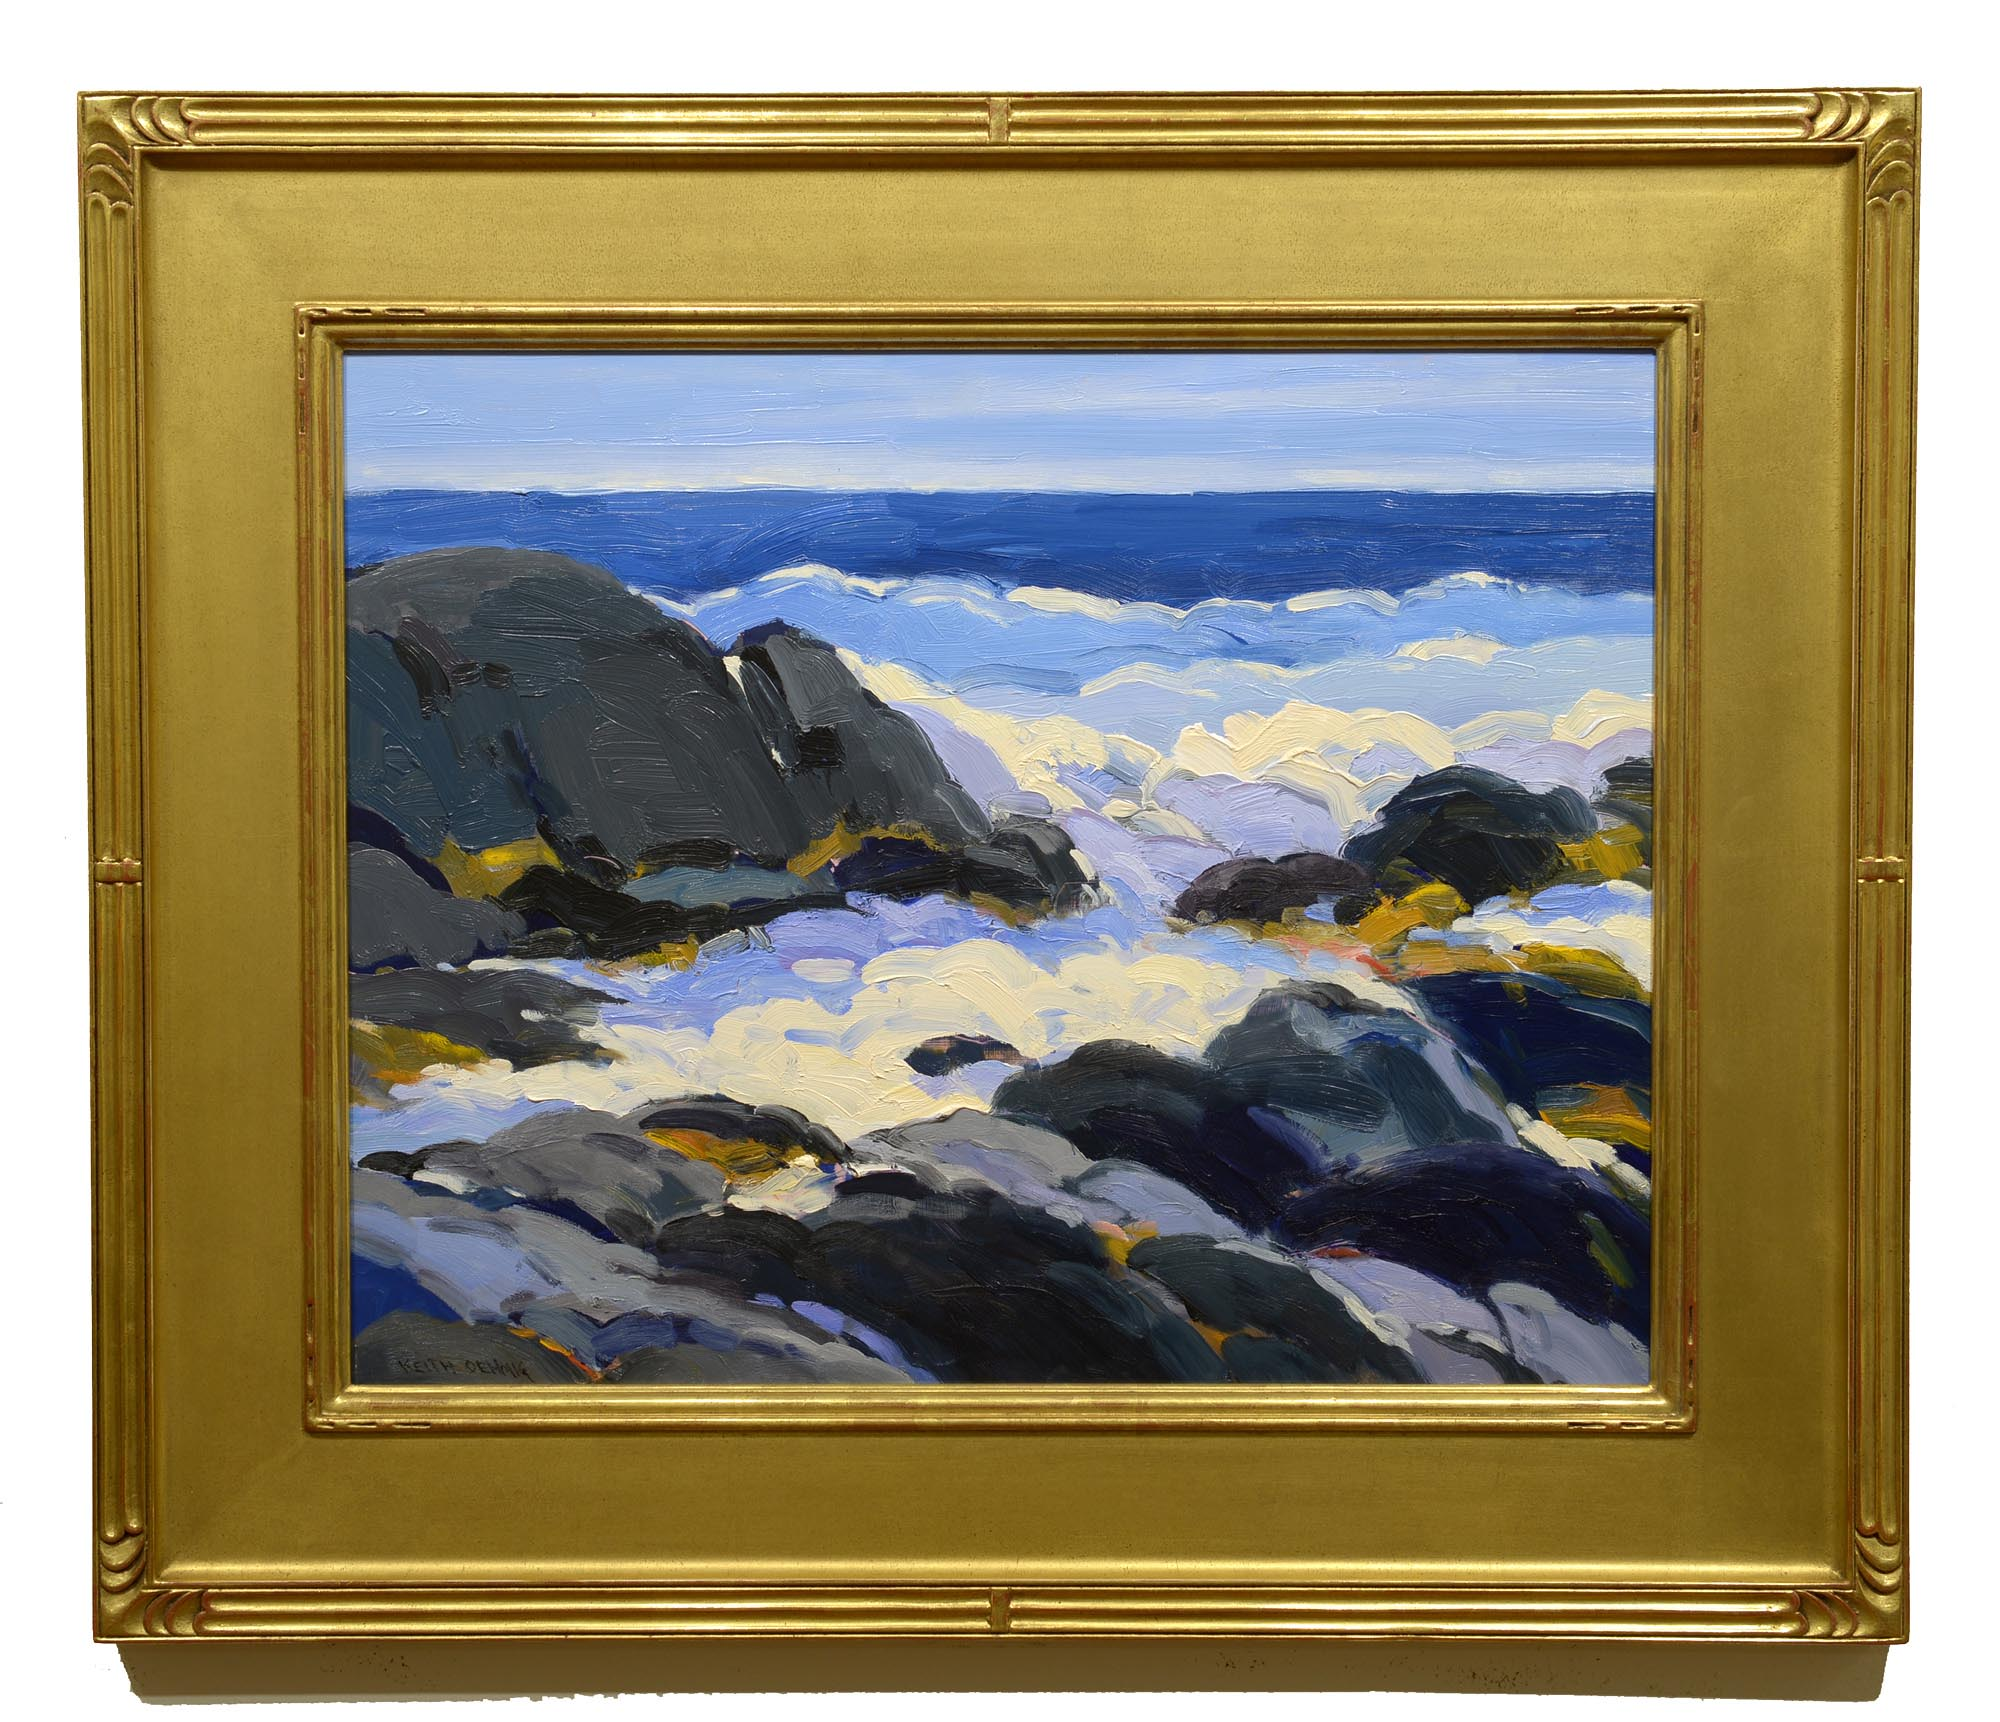 Keith Oehmig Early Morning, Lobster Cove framed